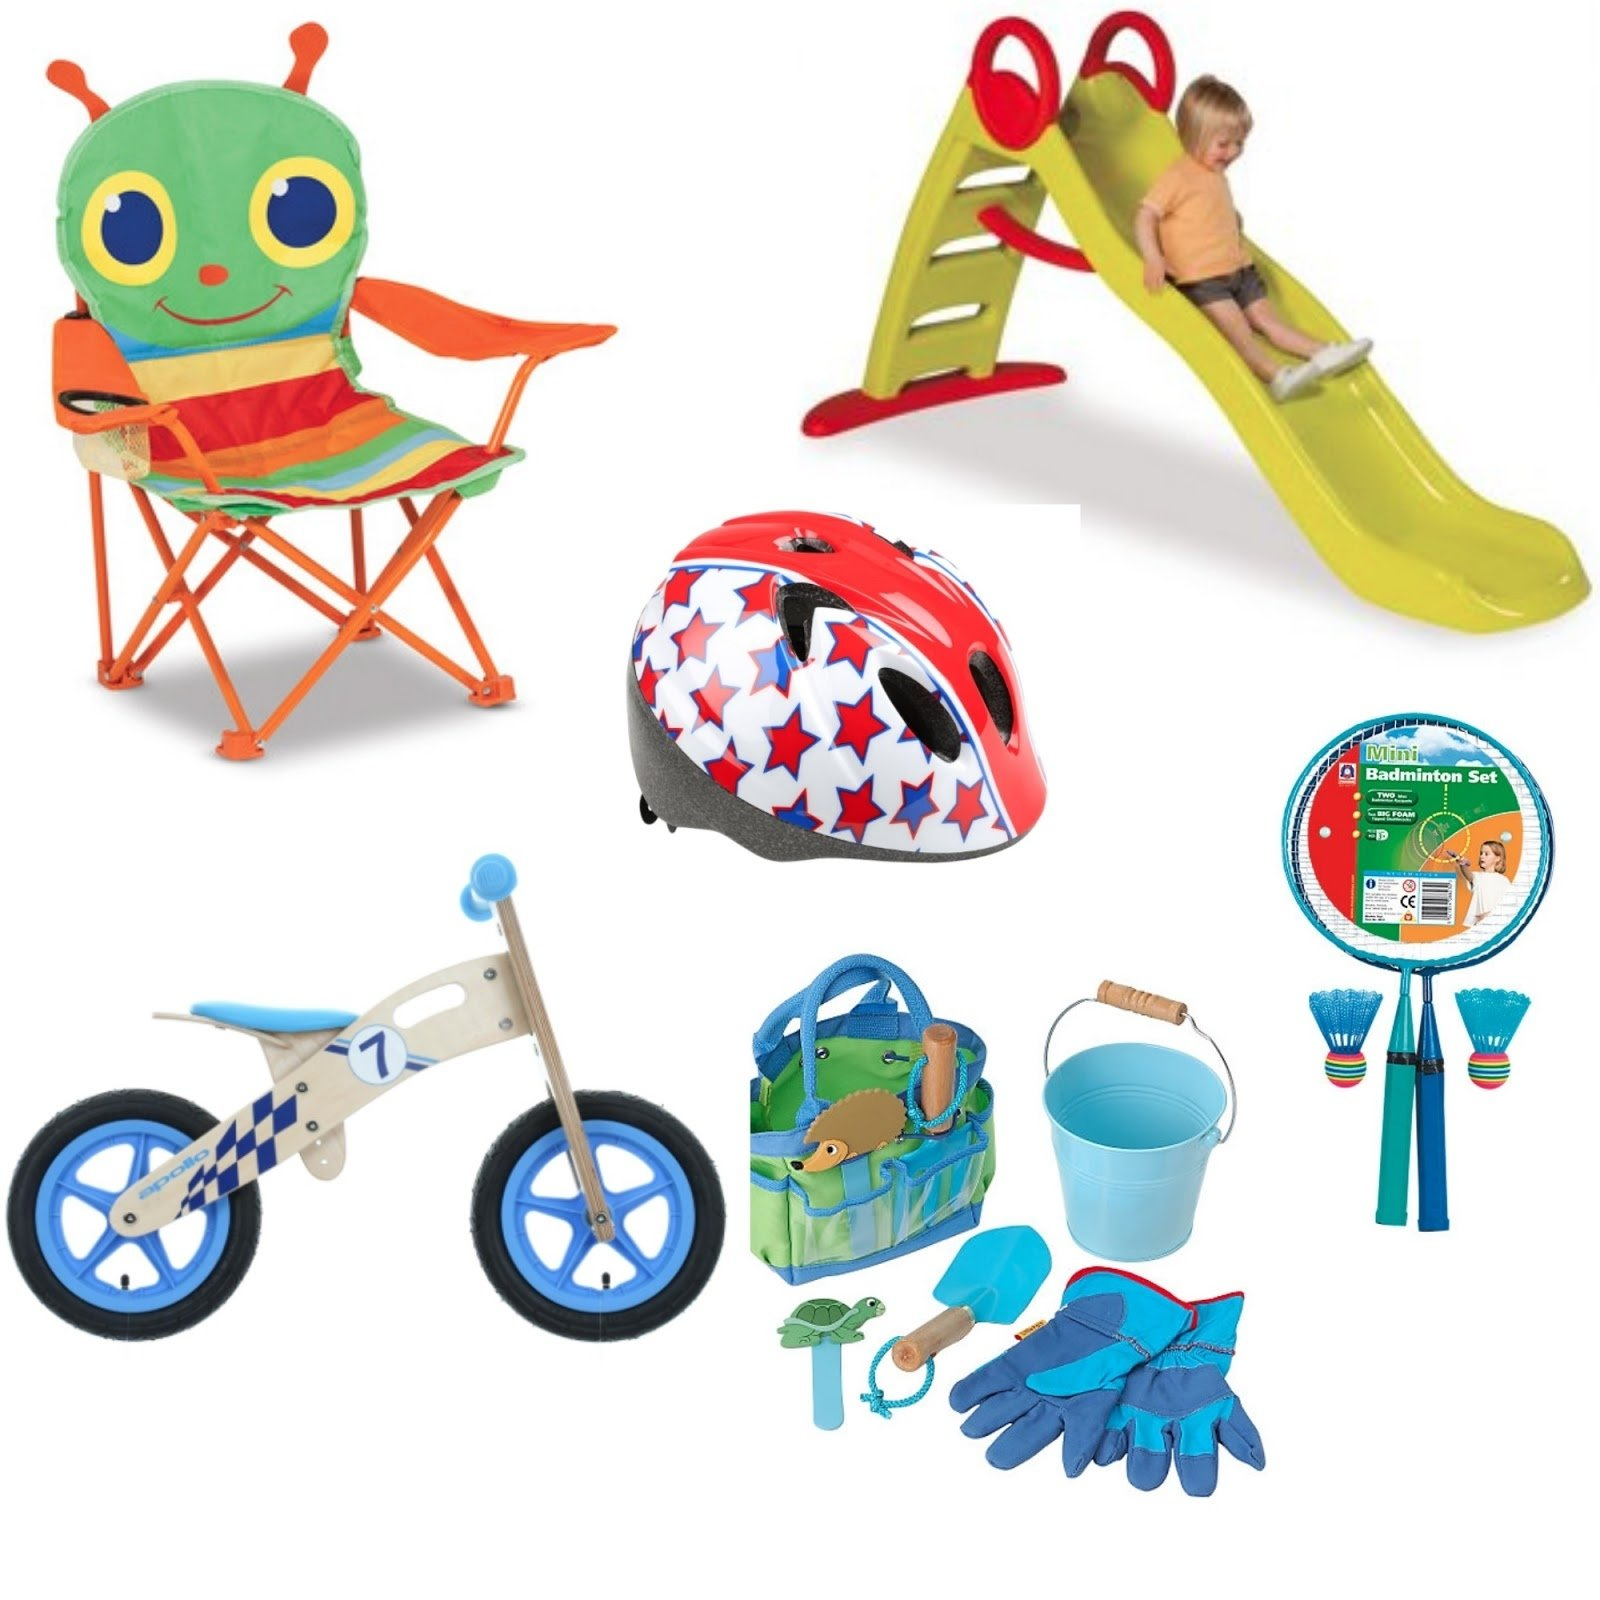 10 Fabulous Gift Ideas For A 3 Year Old birthday gift ideas for a 3 year old oh little one sweet 1 2020